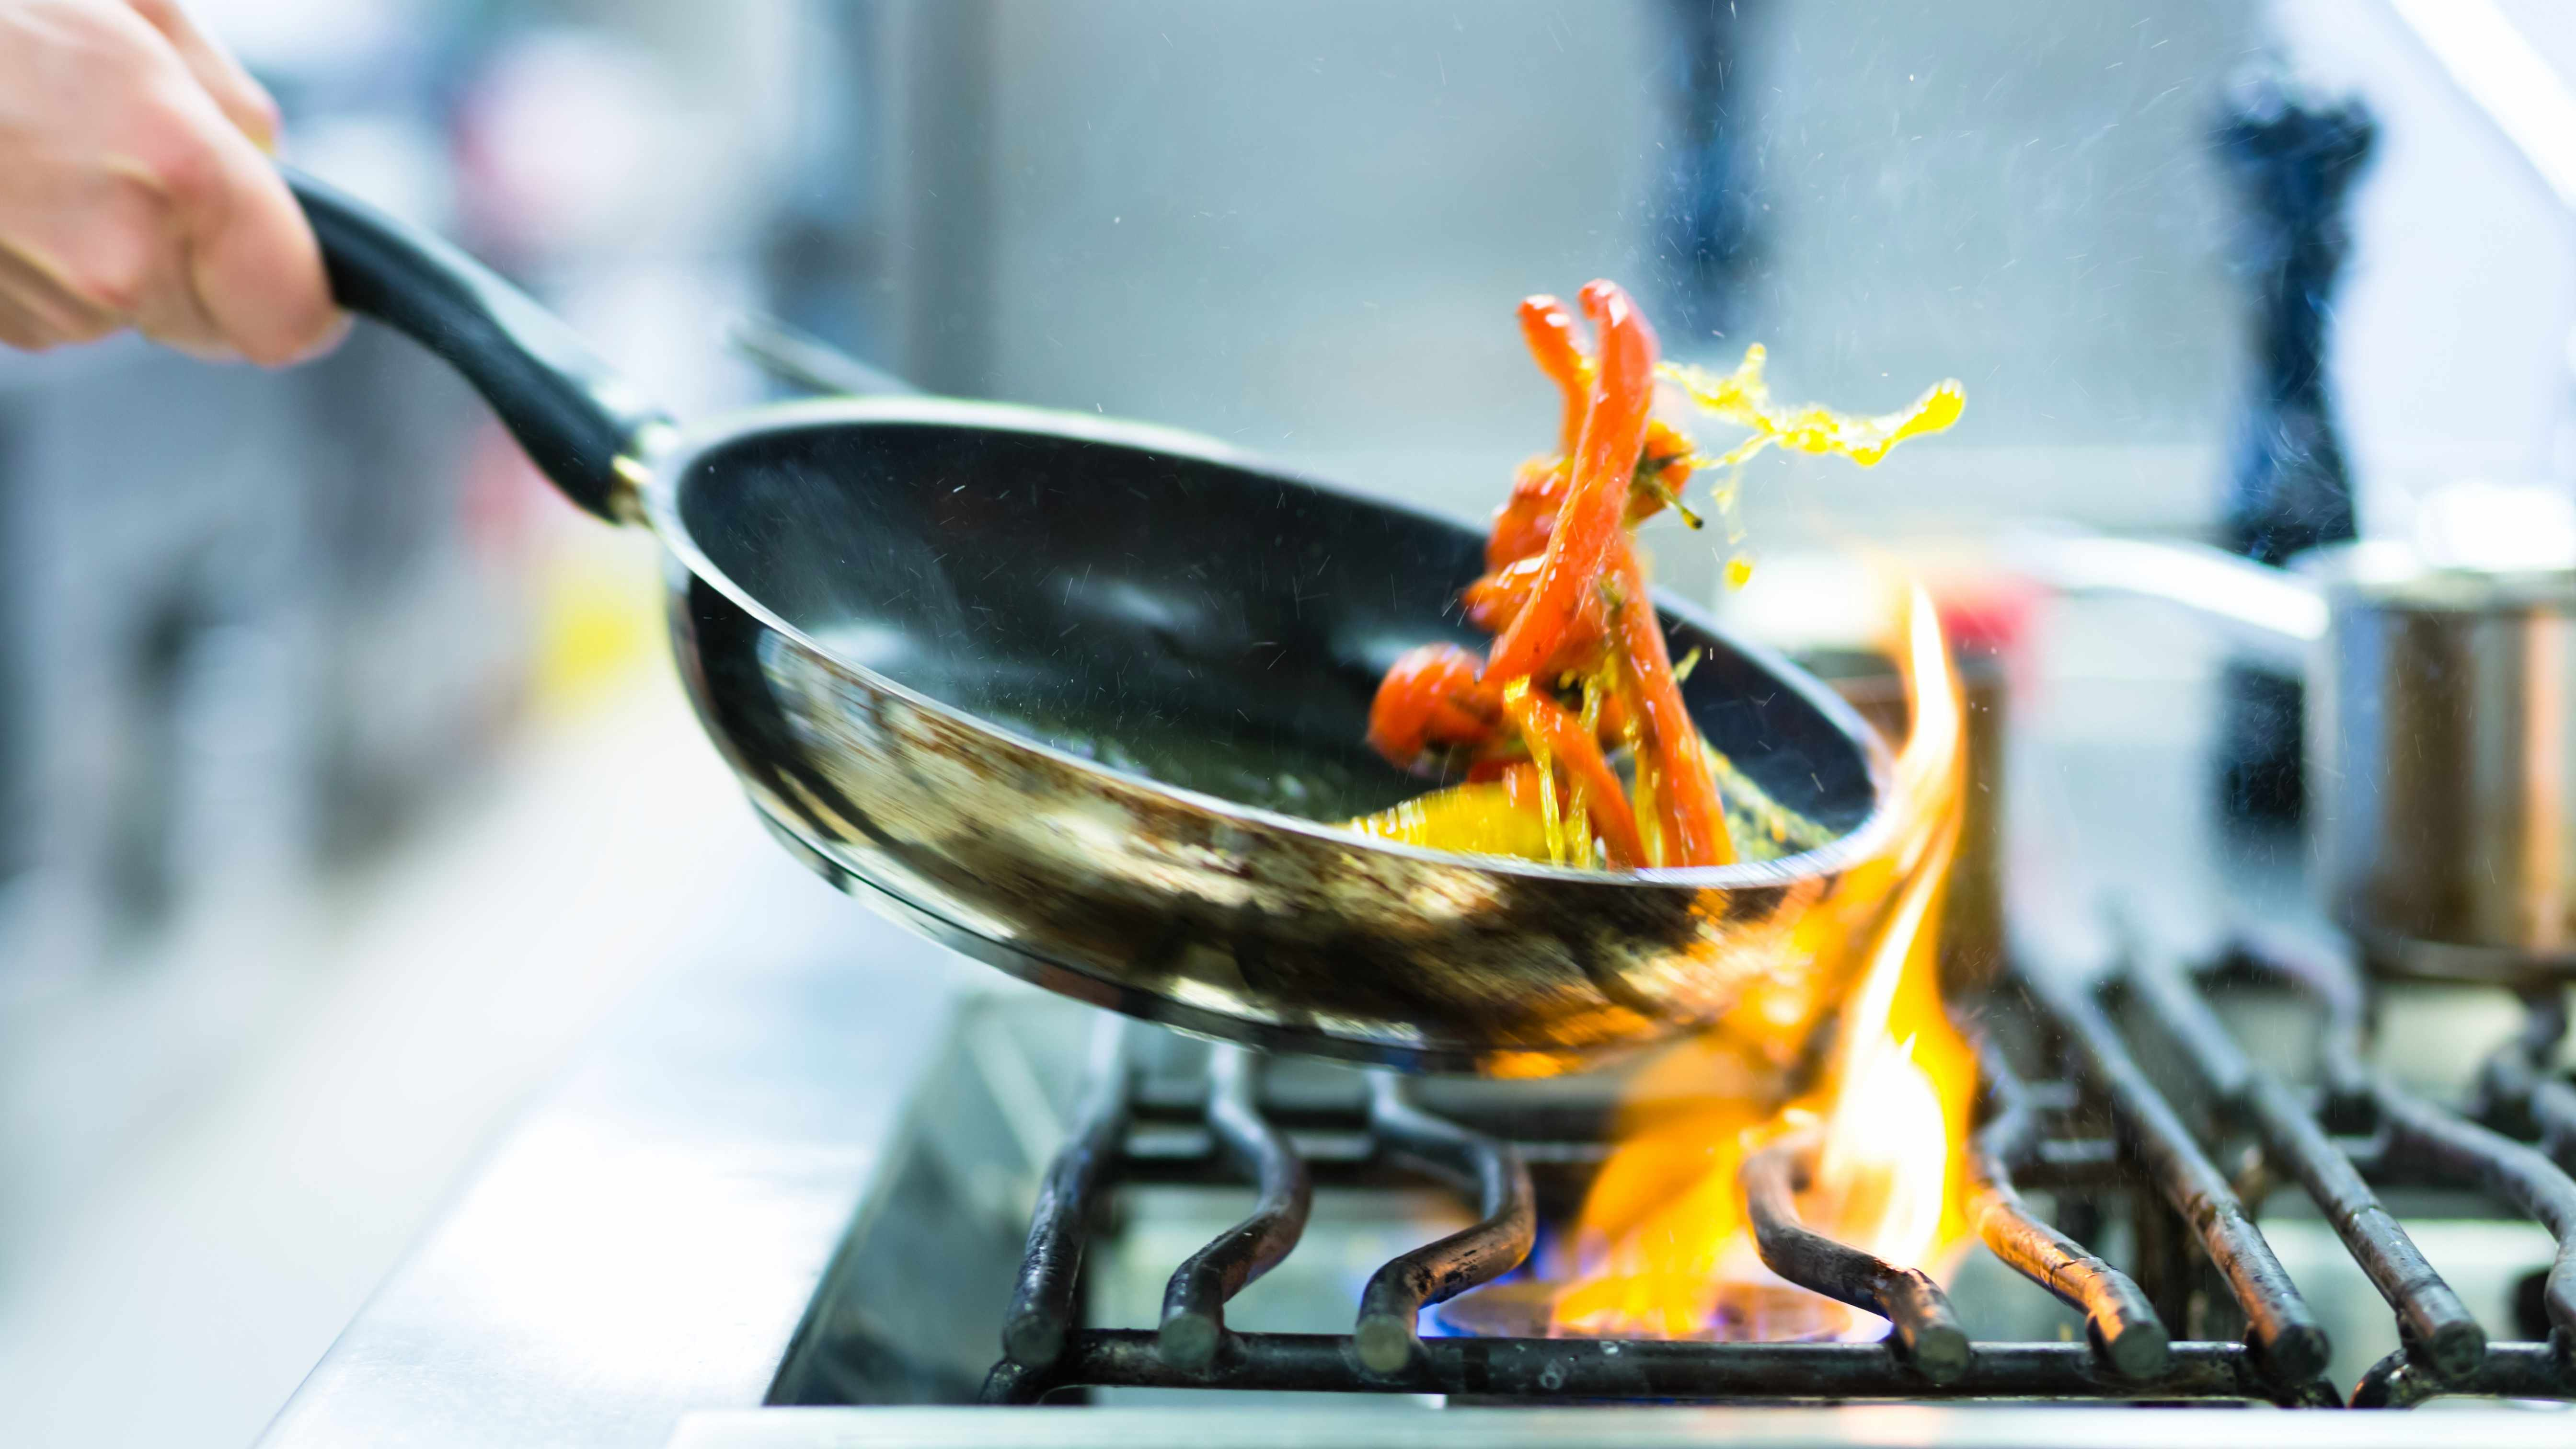 Hot Pan Burned My Hand — Treatment Tips – Mayo Clinic News Network